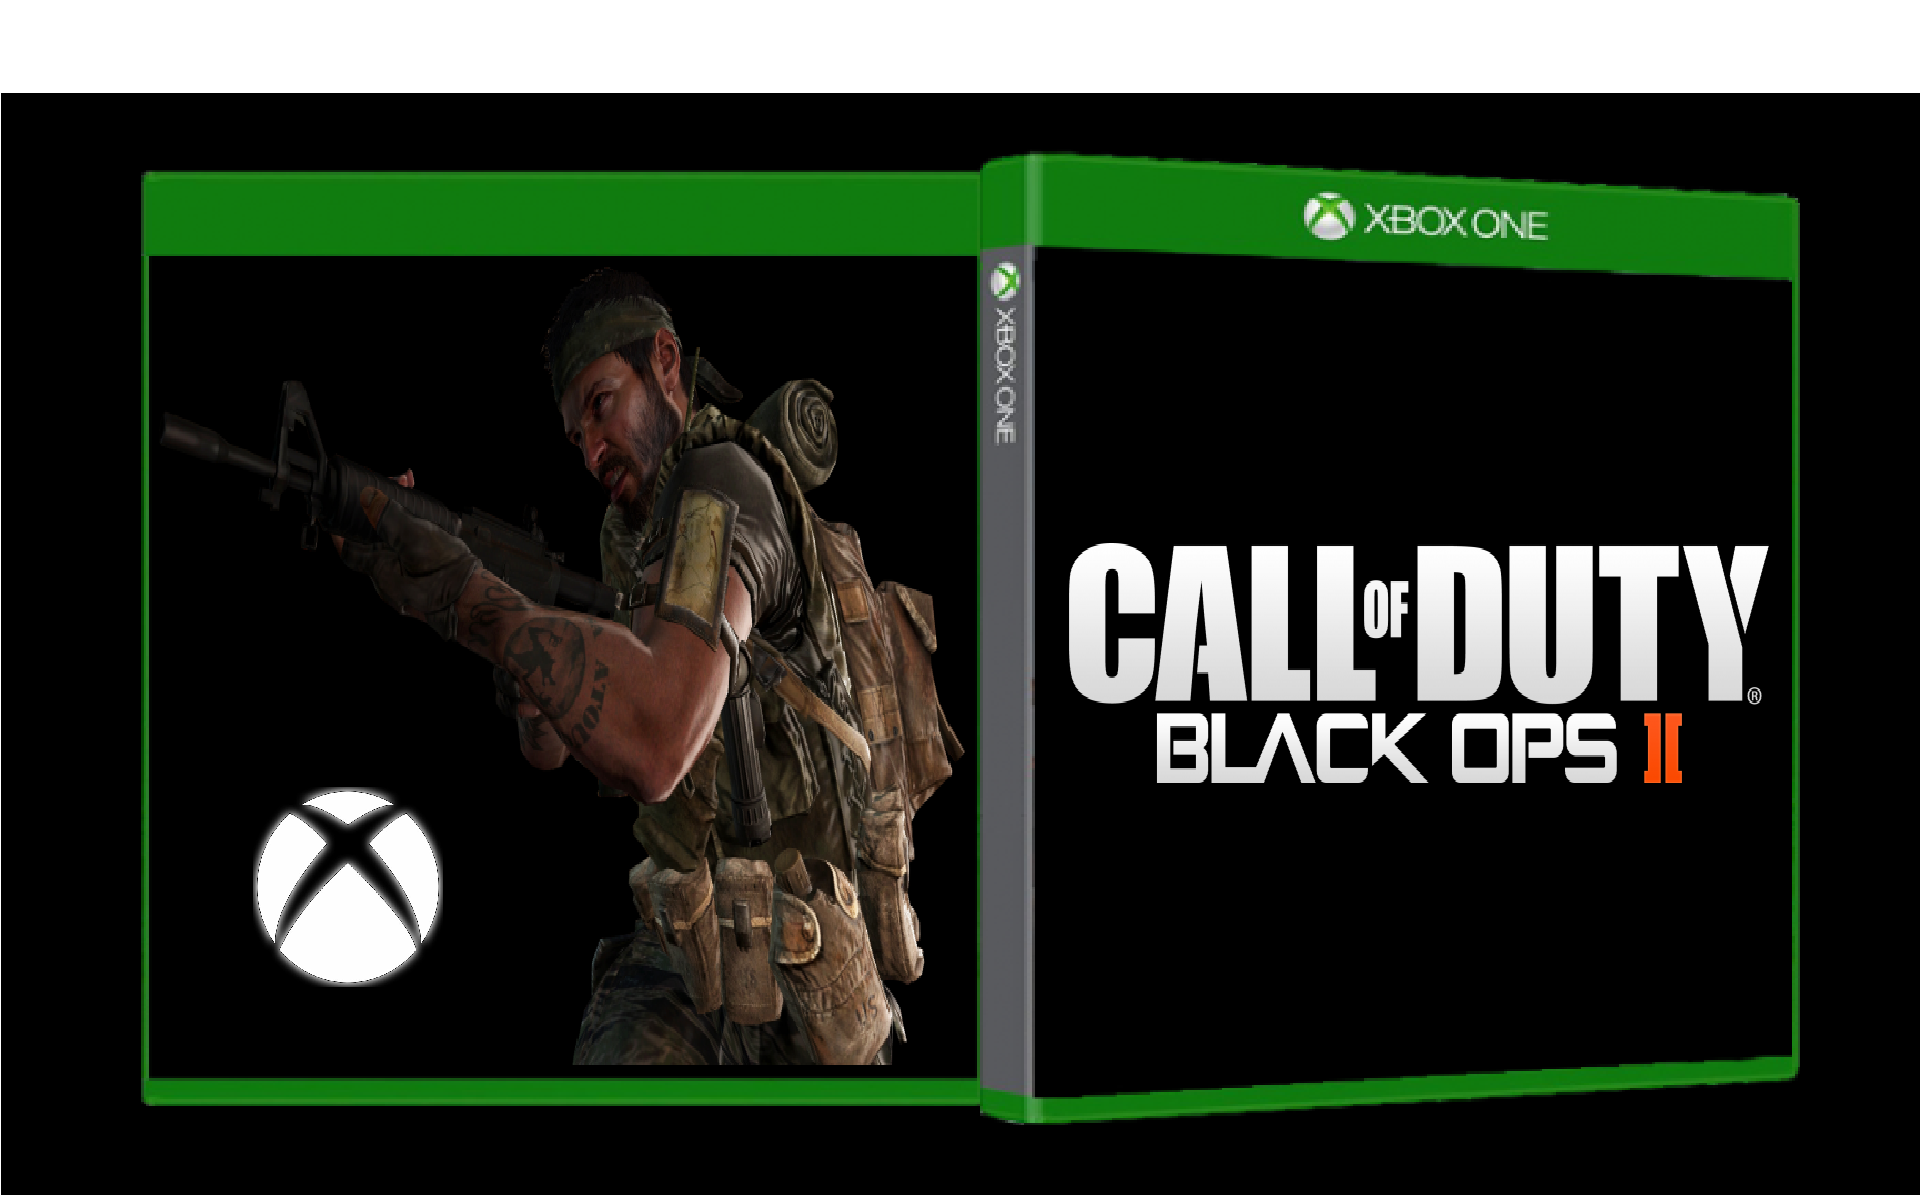 Viewing Full Size Call Of Duty Black Ops II Box Cover